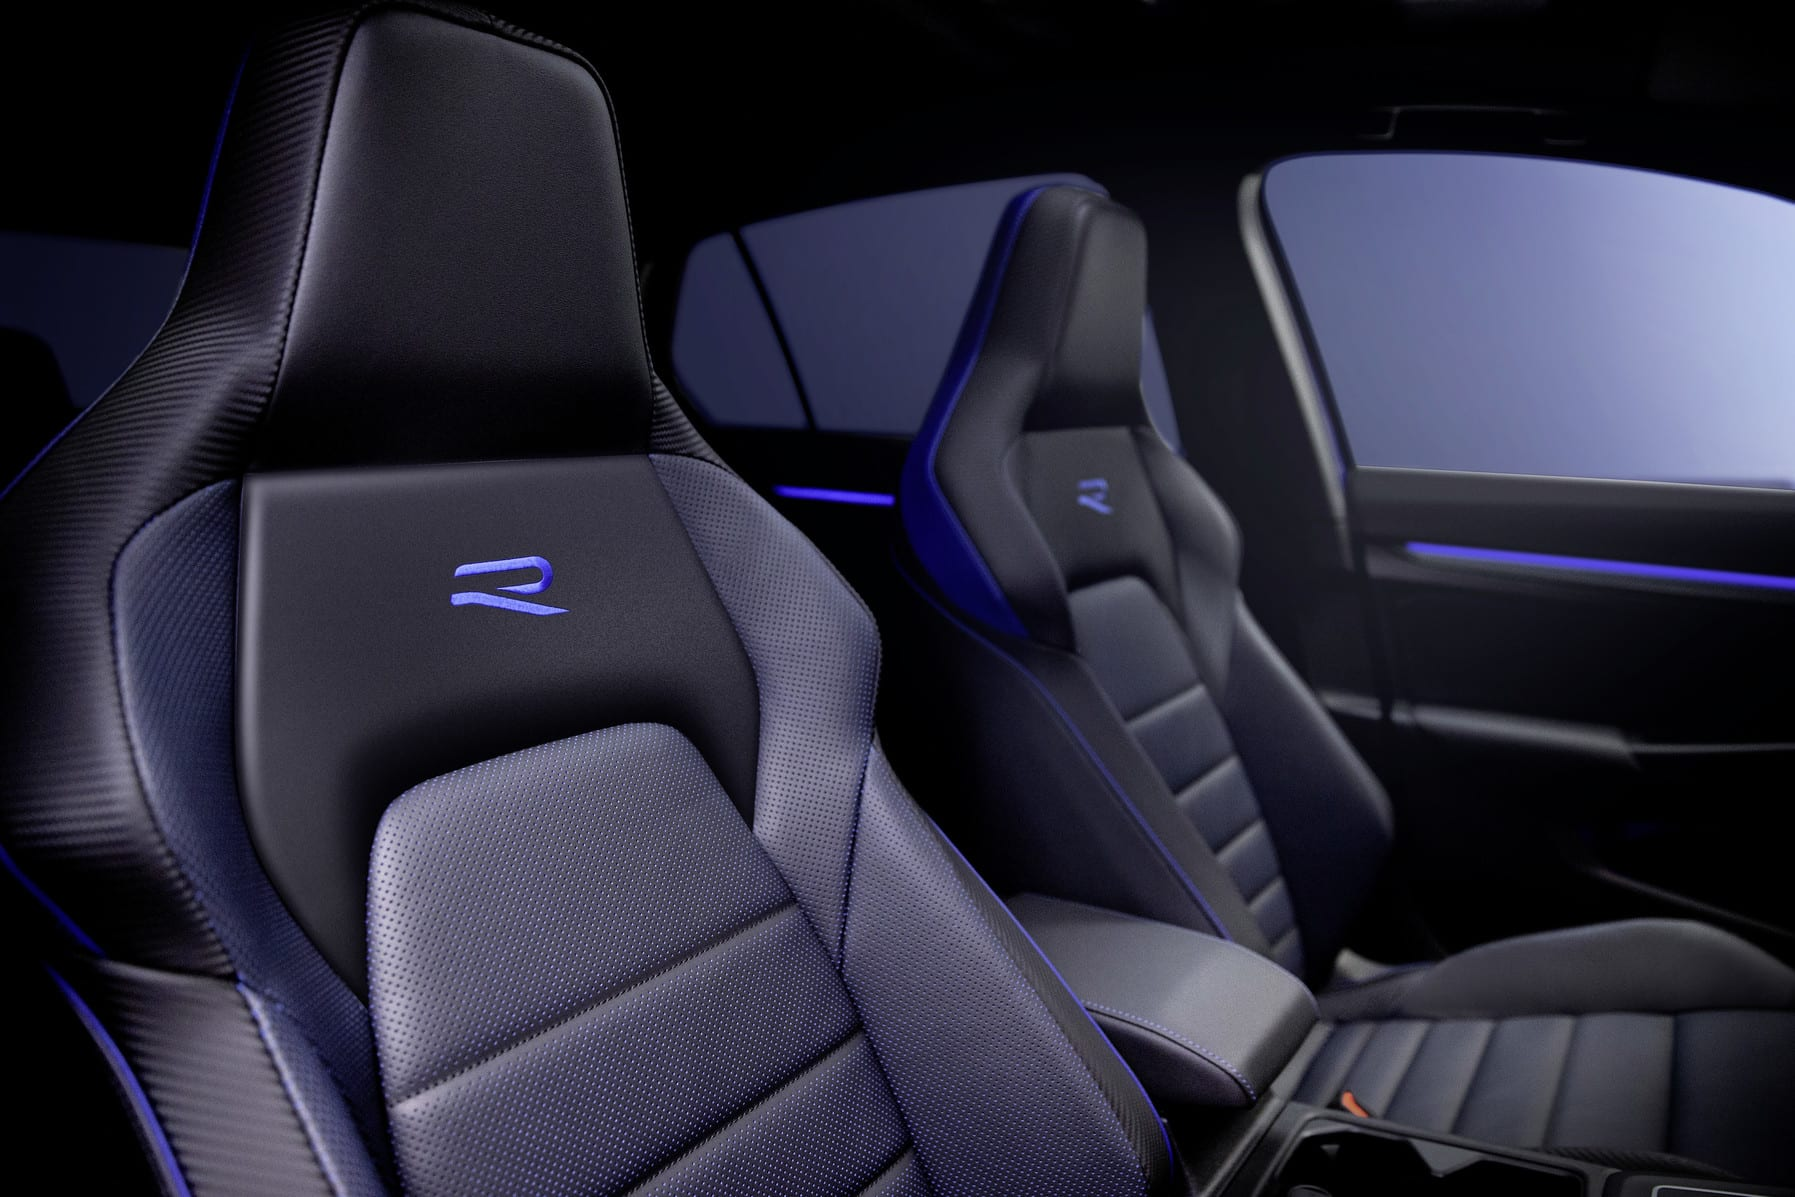 The Golf R's sports seats